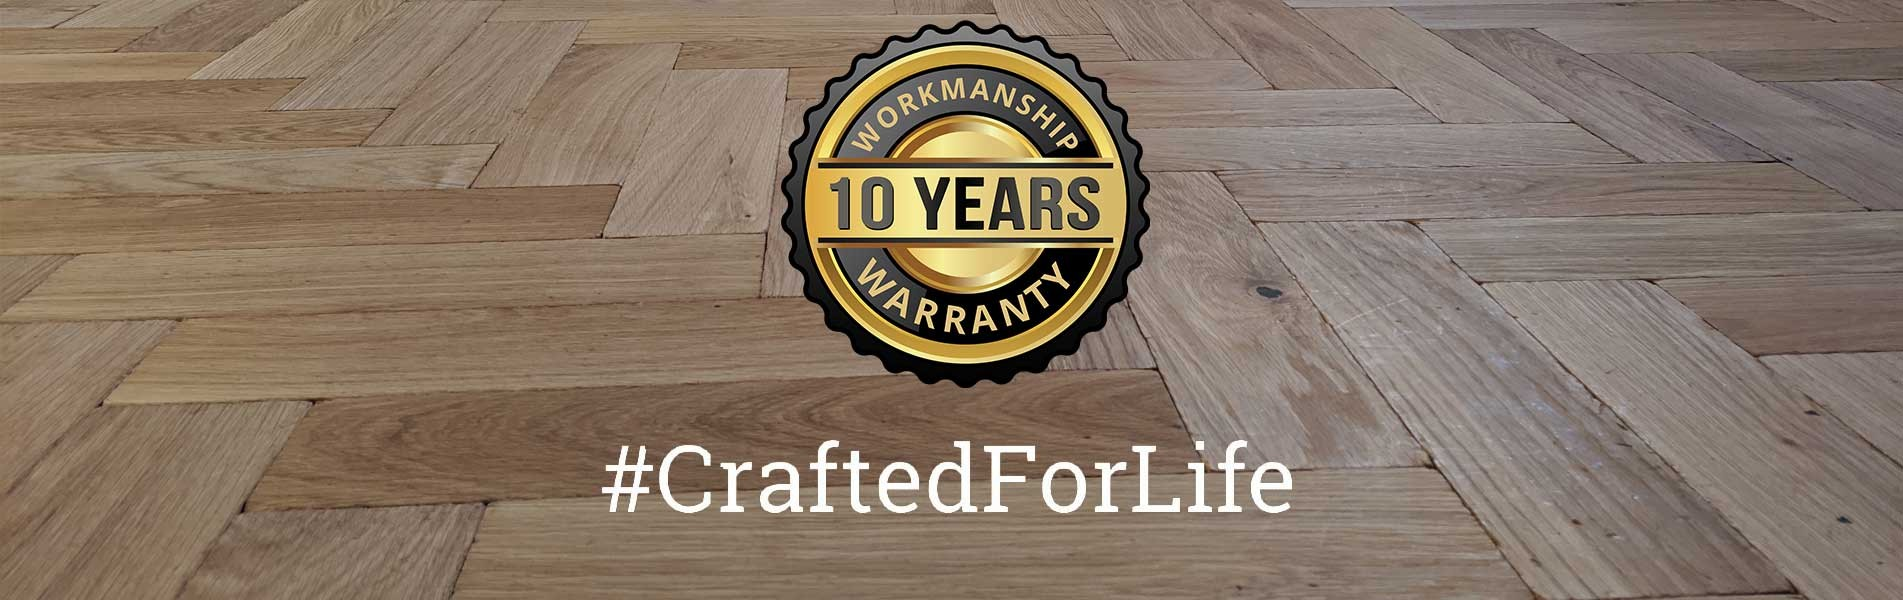 10-Years-Waranty #CraftedForLife